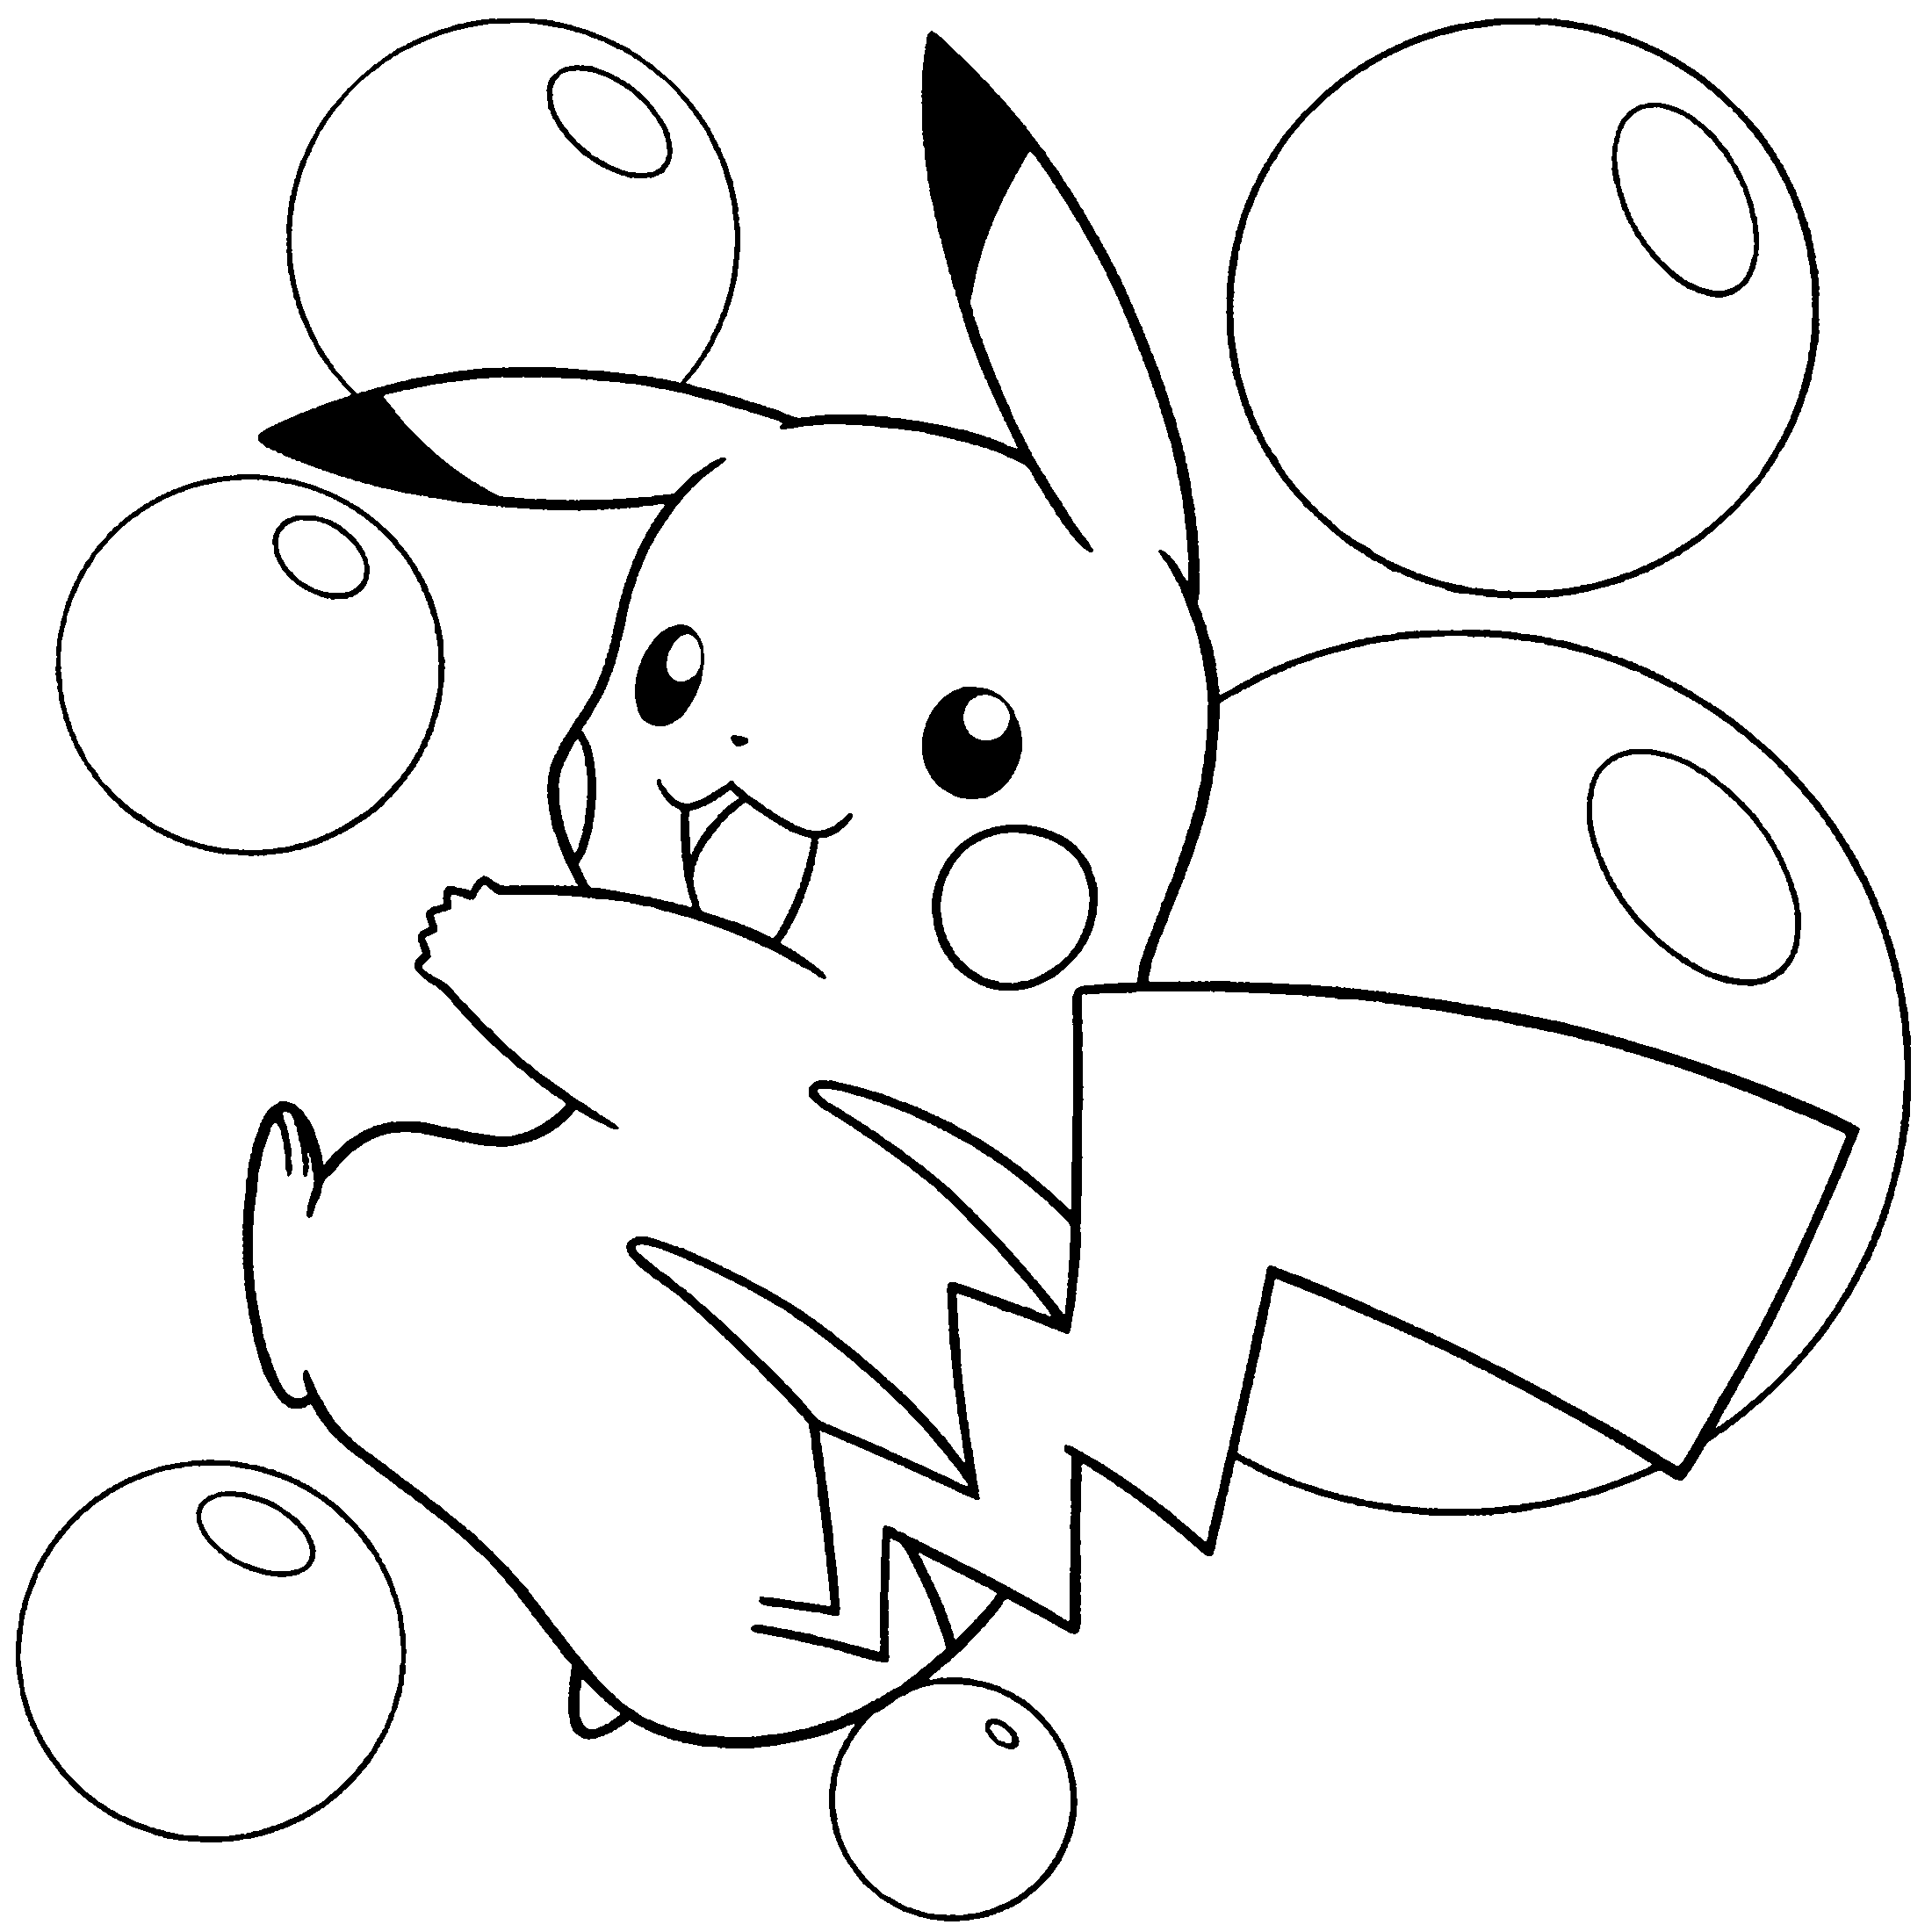 Dibujos pikachu para dibujar imprimir colorear y for Pokemon pikachu coloring pages free